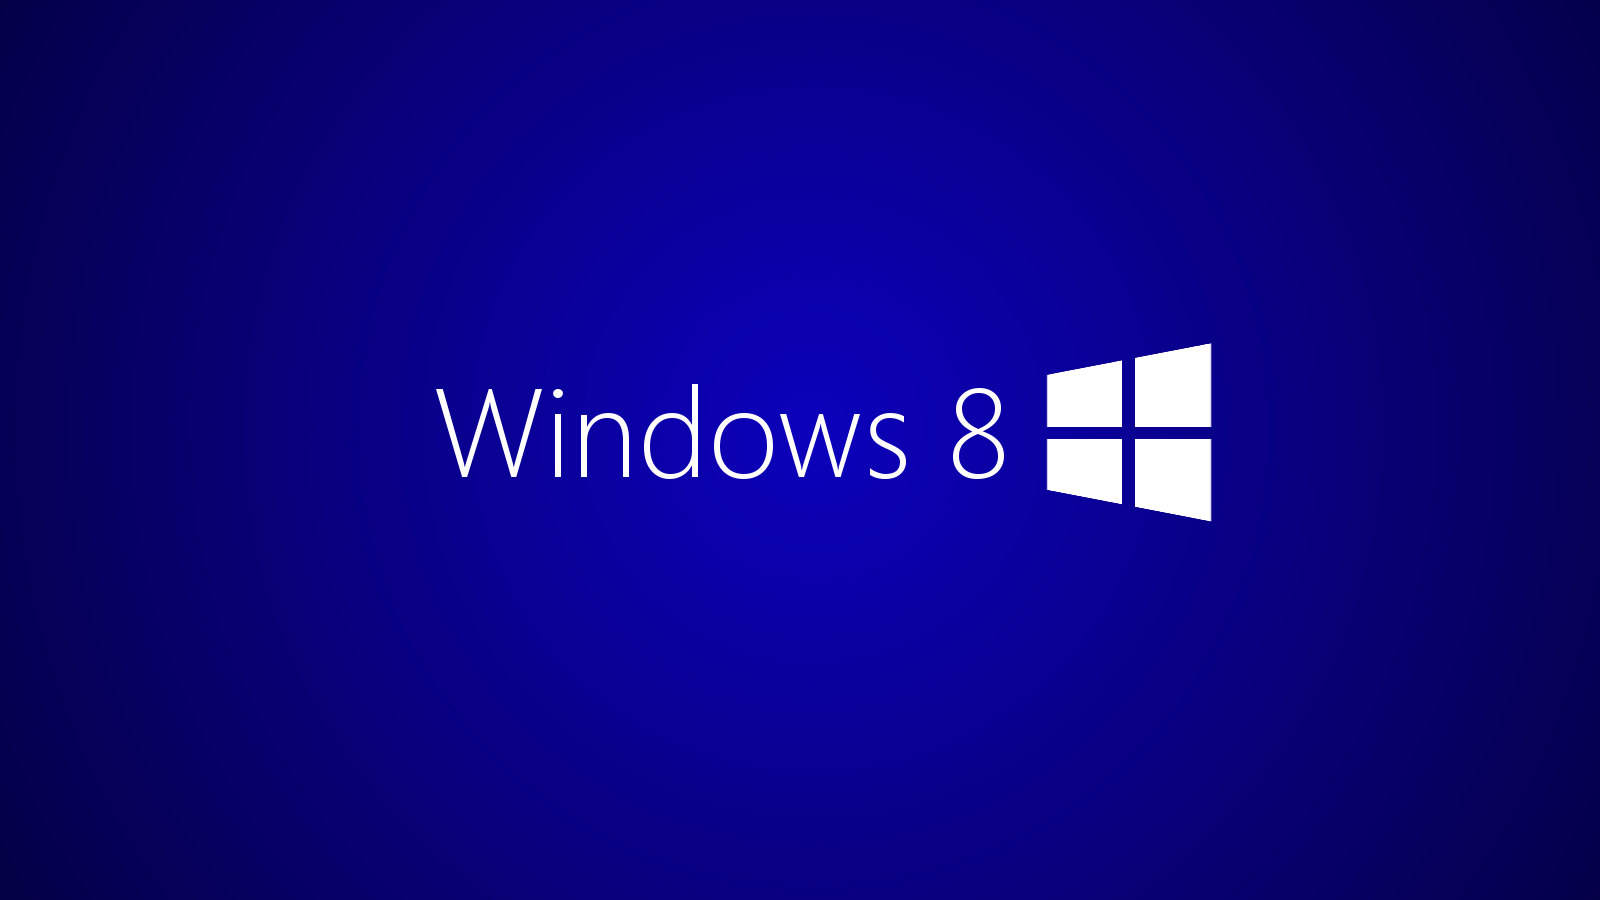 windows 8 official wallpapers wallpaper cave